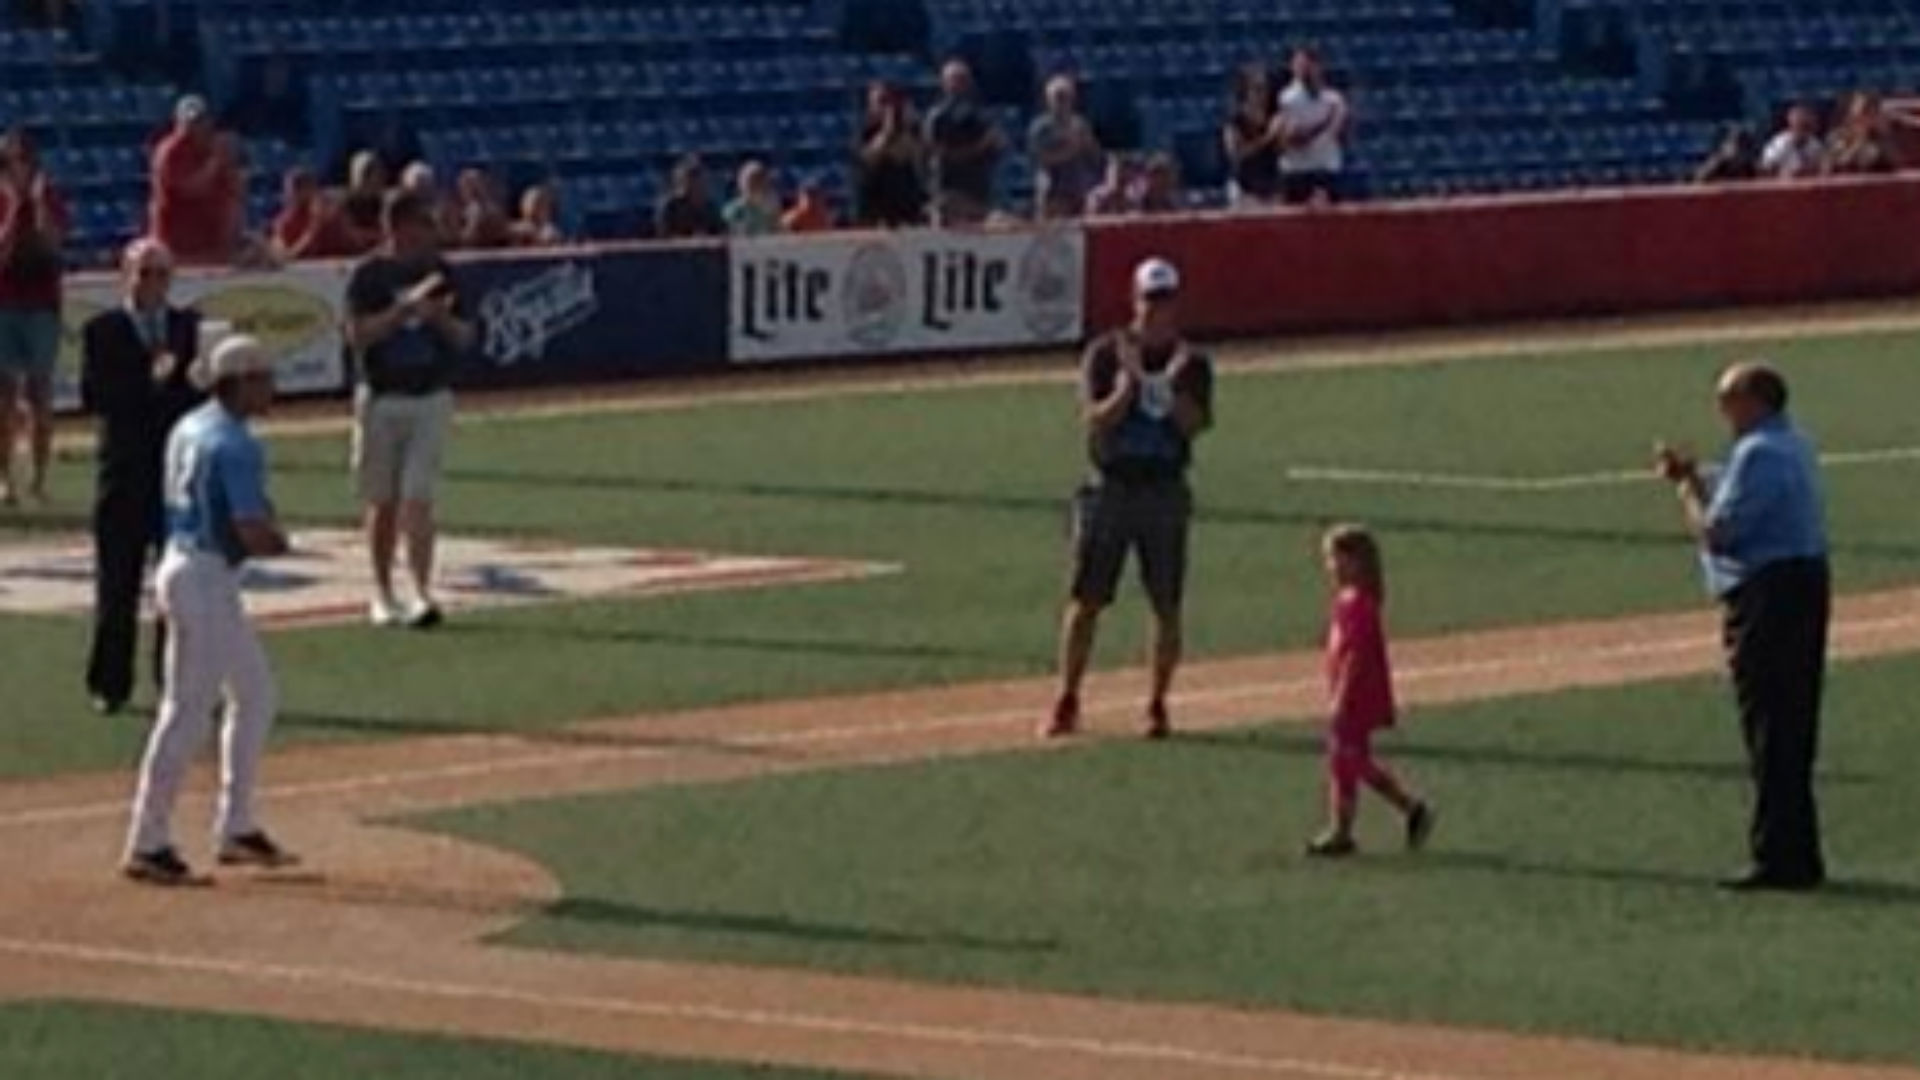 Sister of Kaiser Carlile throws out first pitch for Liberal Bee Jays